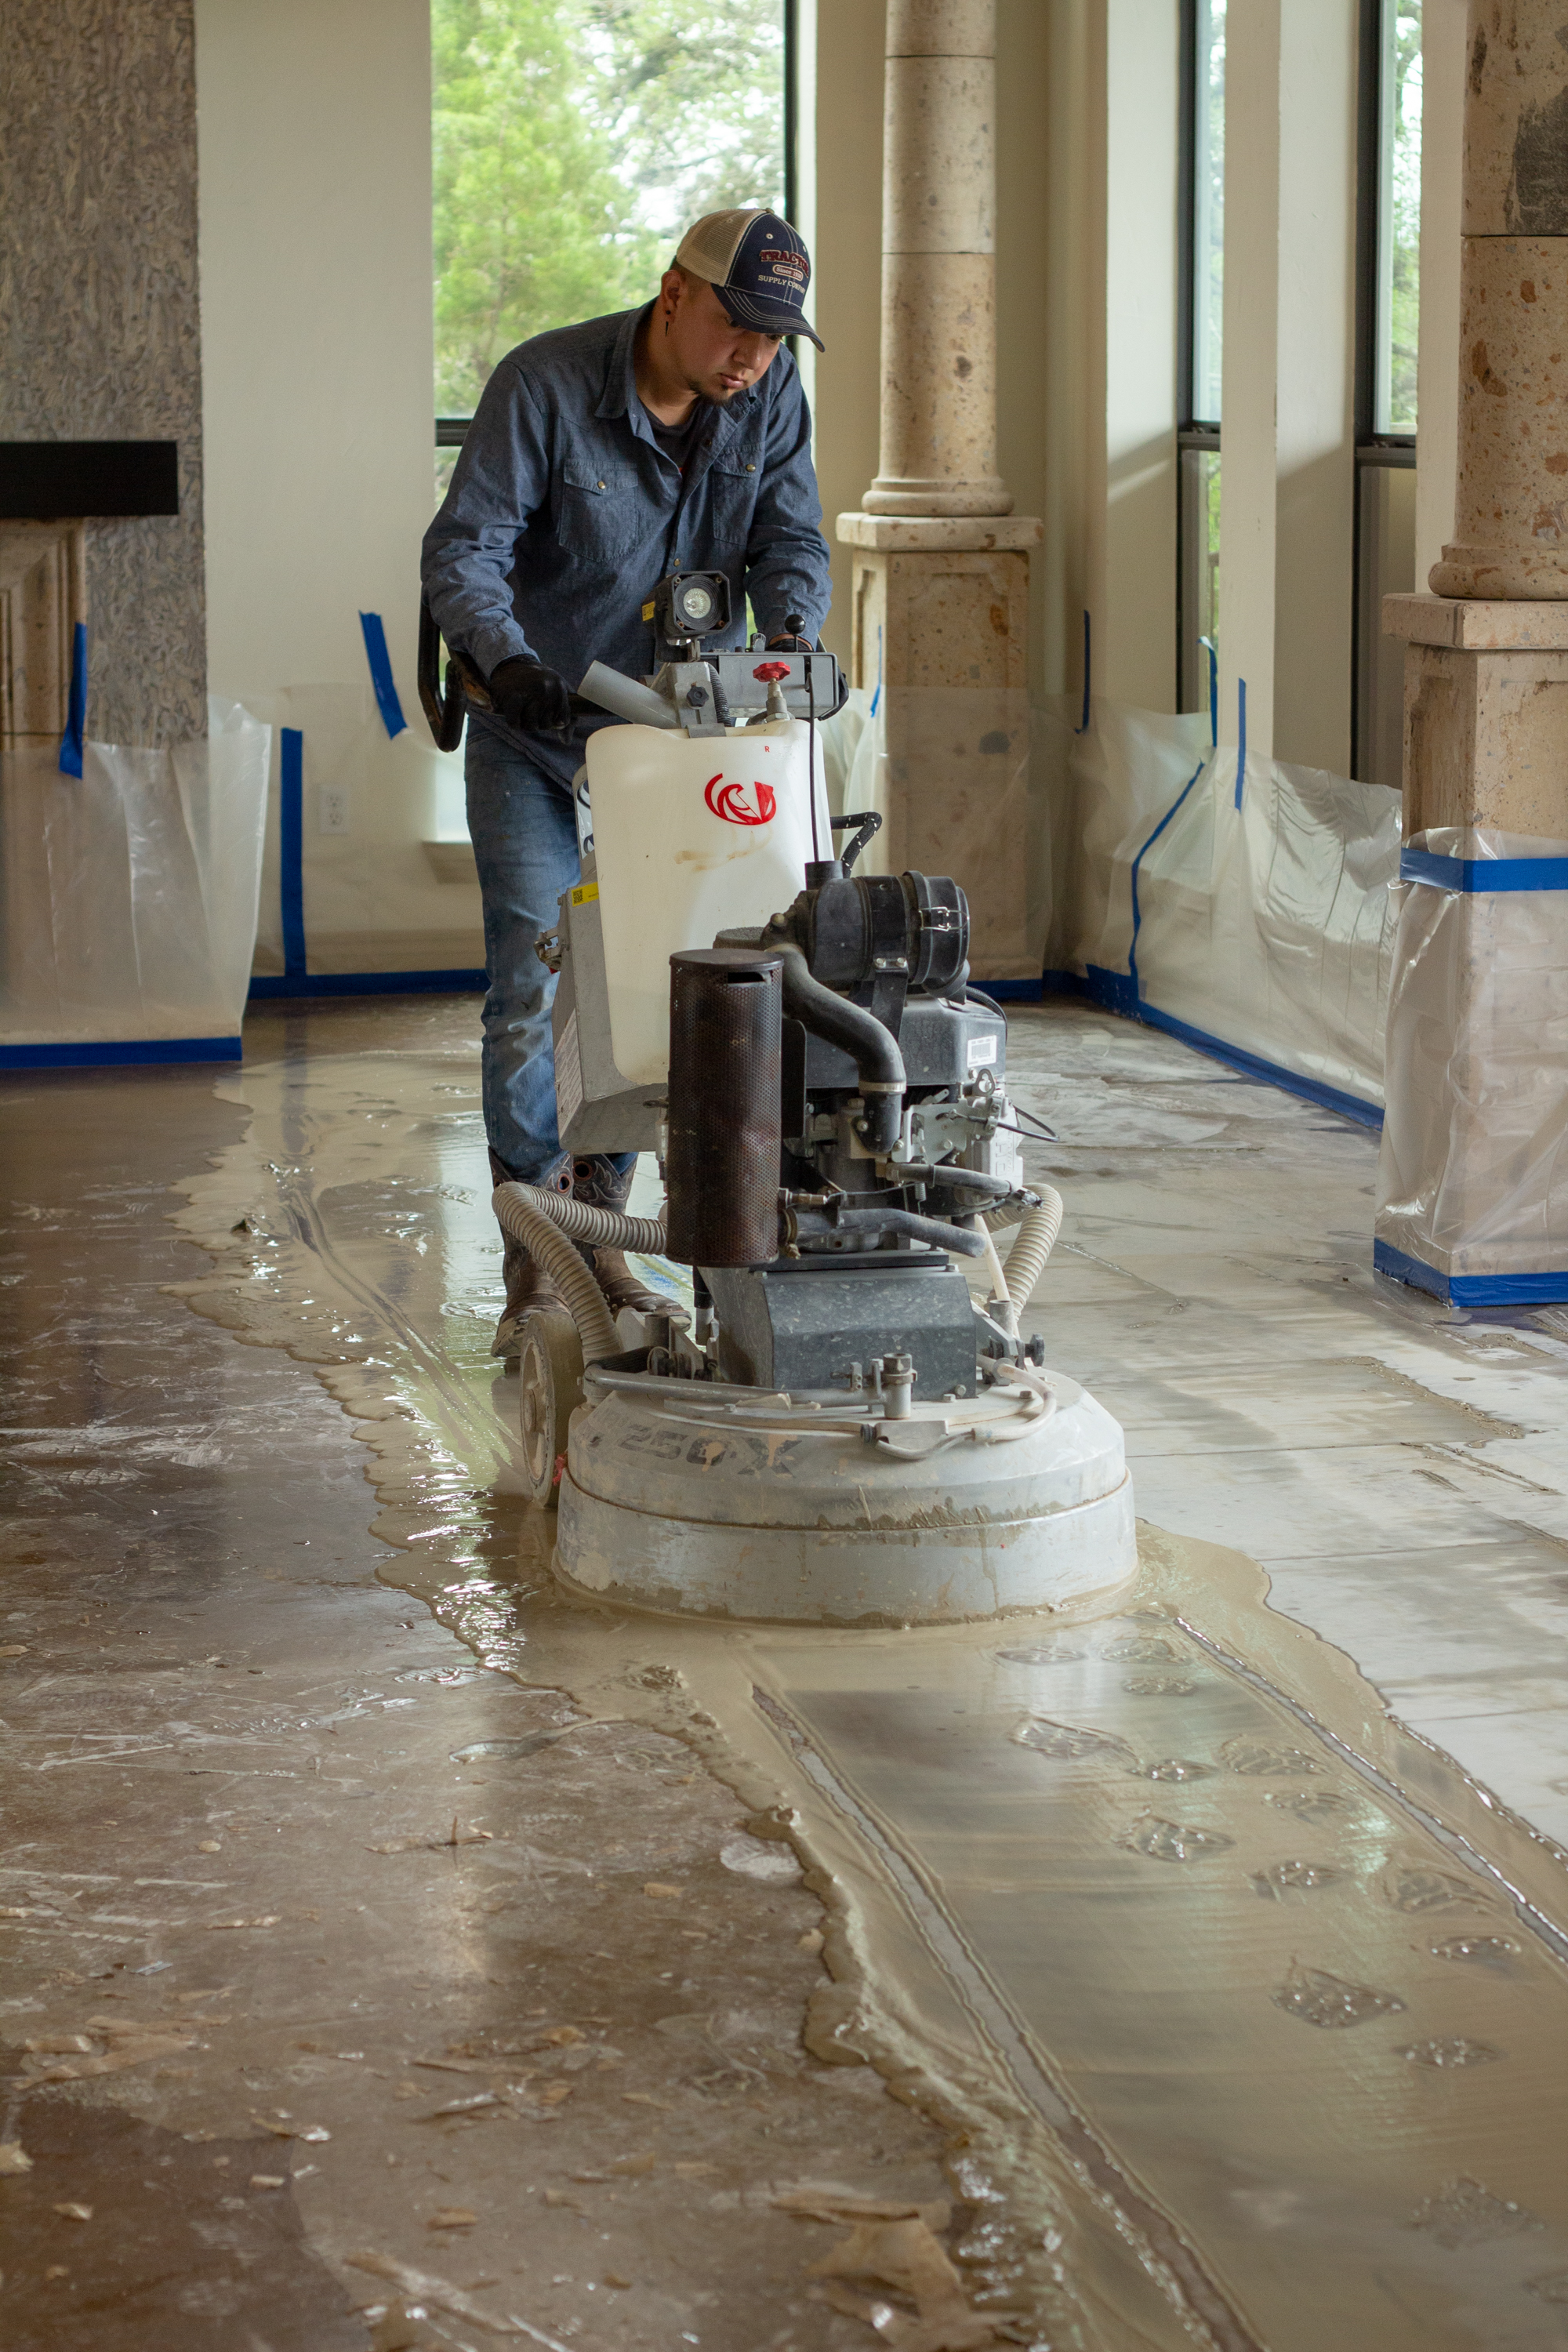 We wet sand the floor to remove the old sealer. - Then we diamond-polish and stain the fresh concrete.